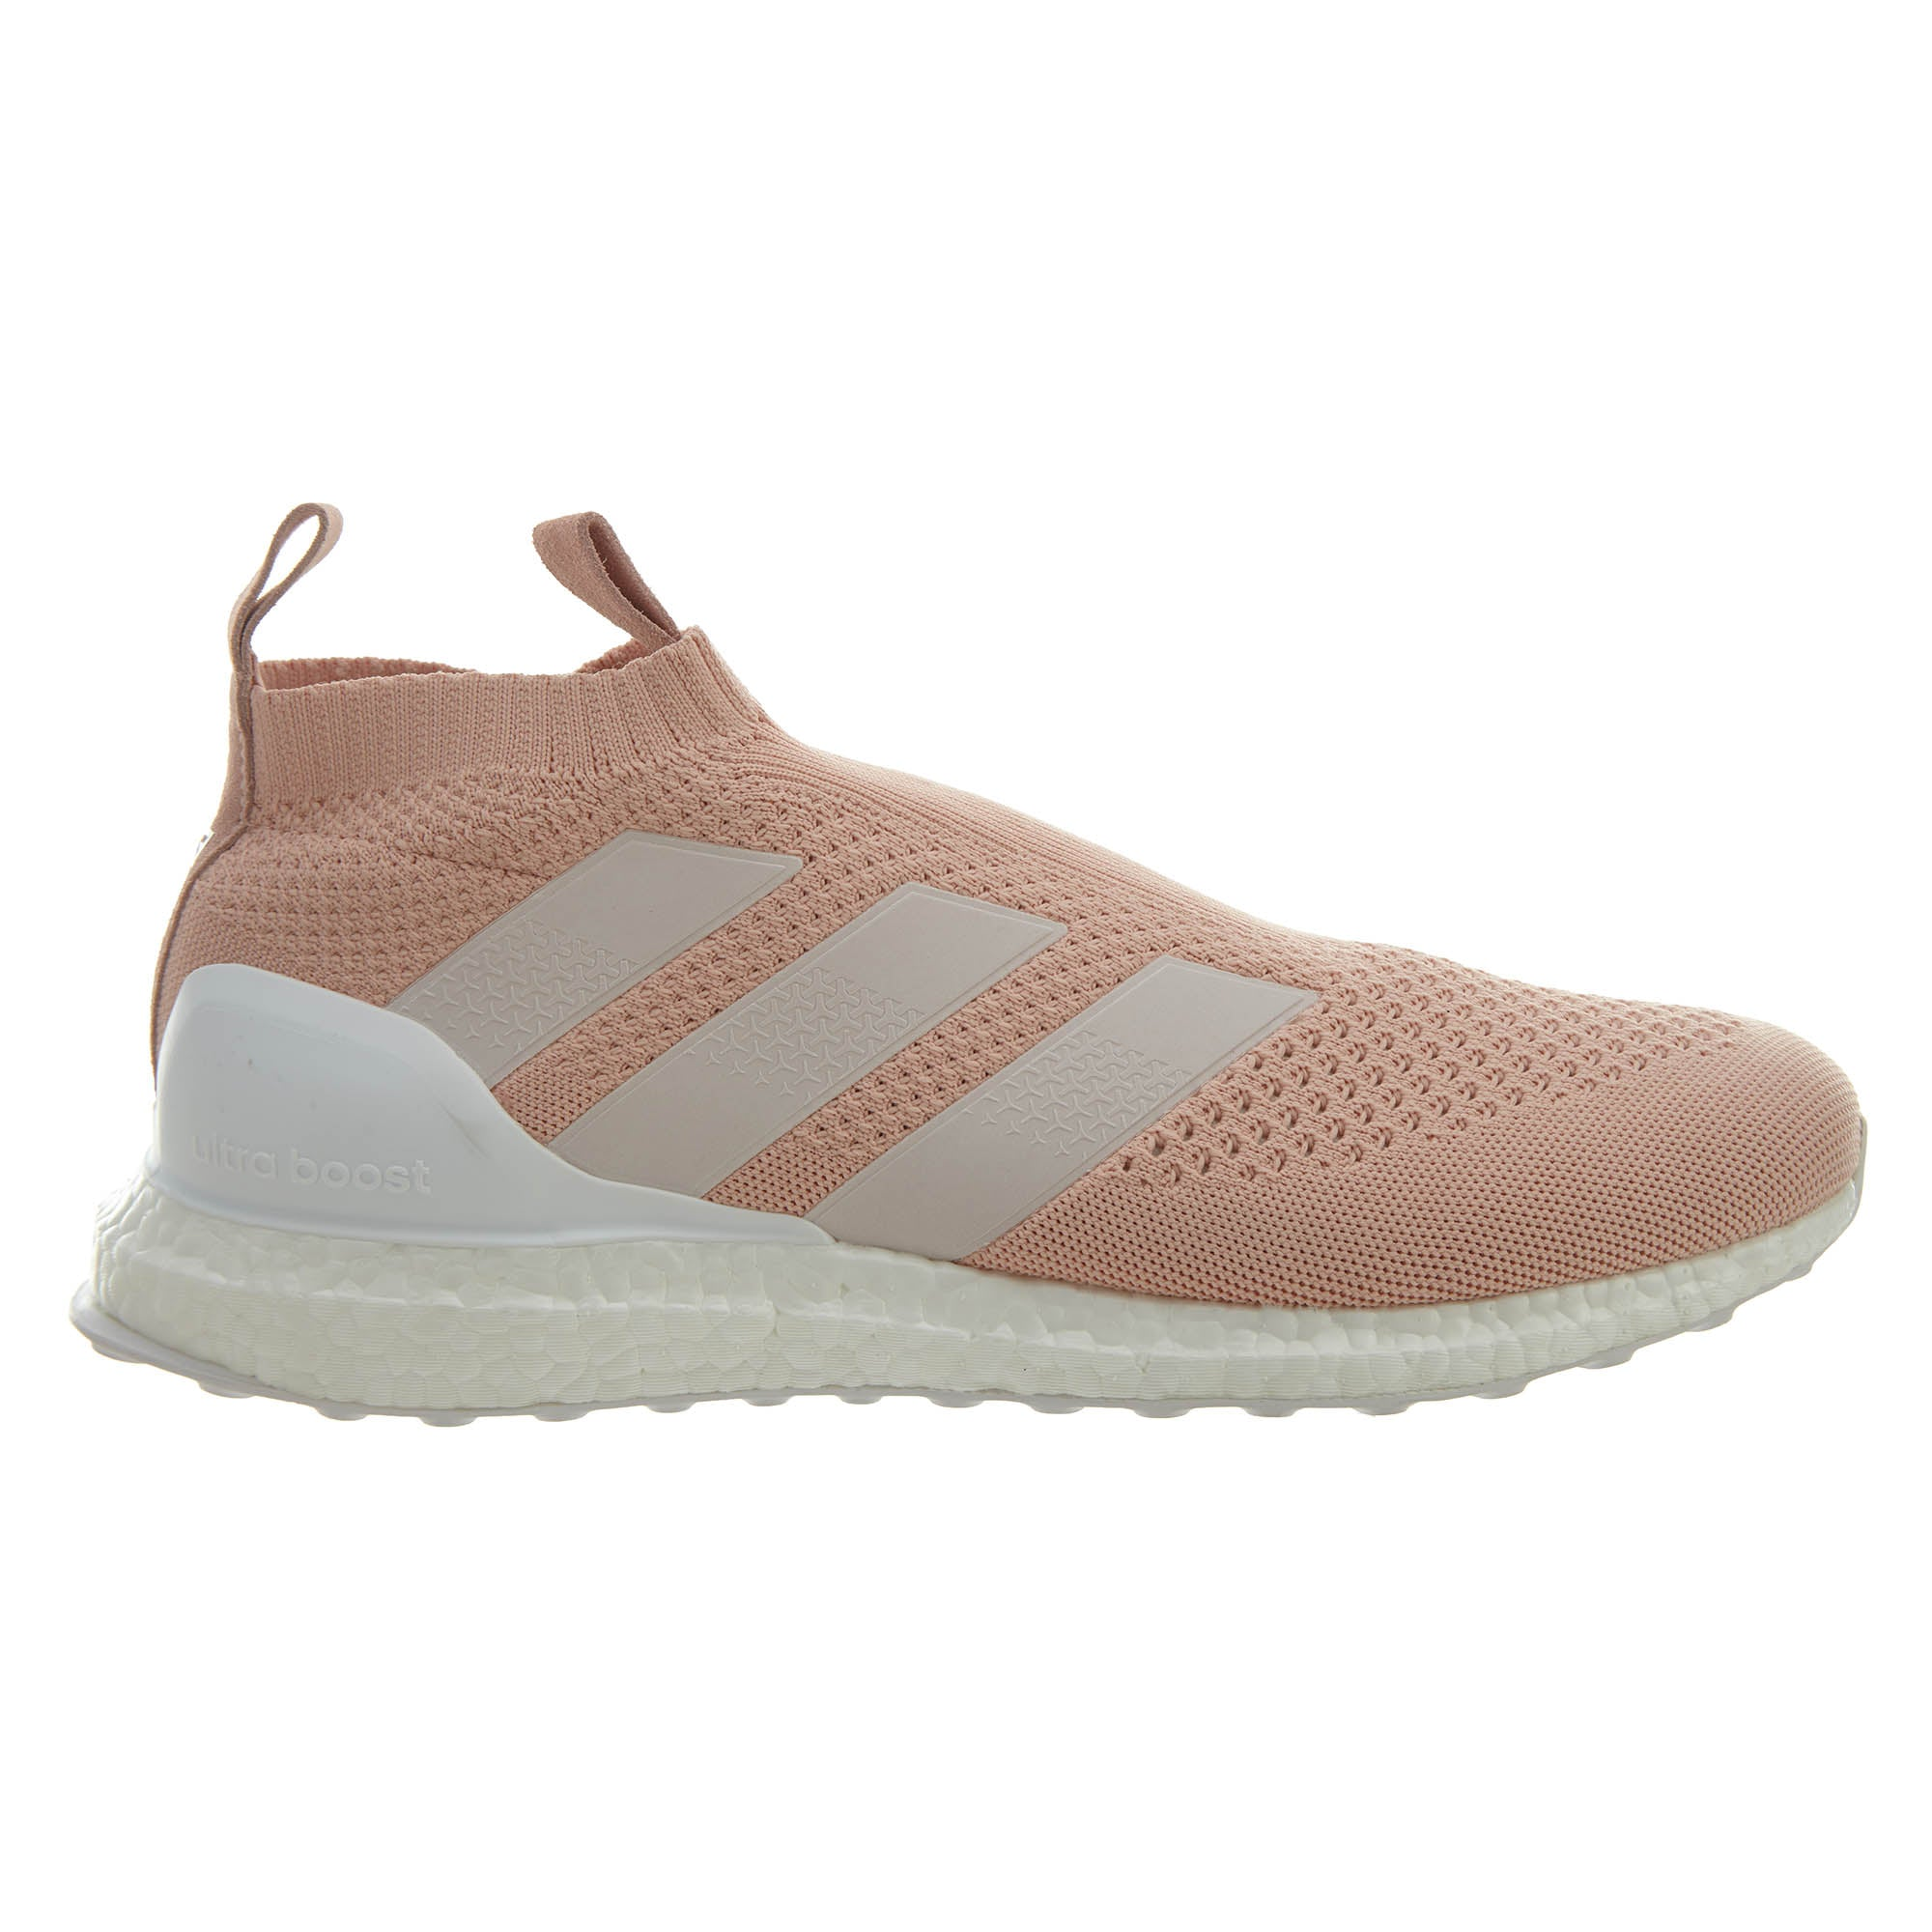 best service d989a 55463 Adidas Ace 16 + Kith Ultraboost Mens Style  Cm7890